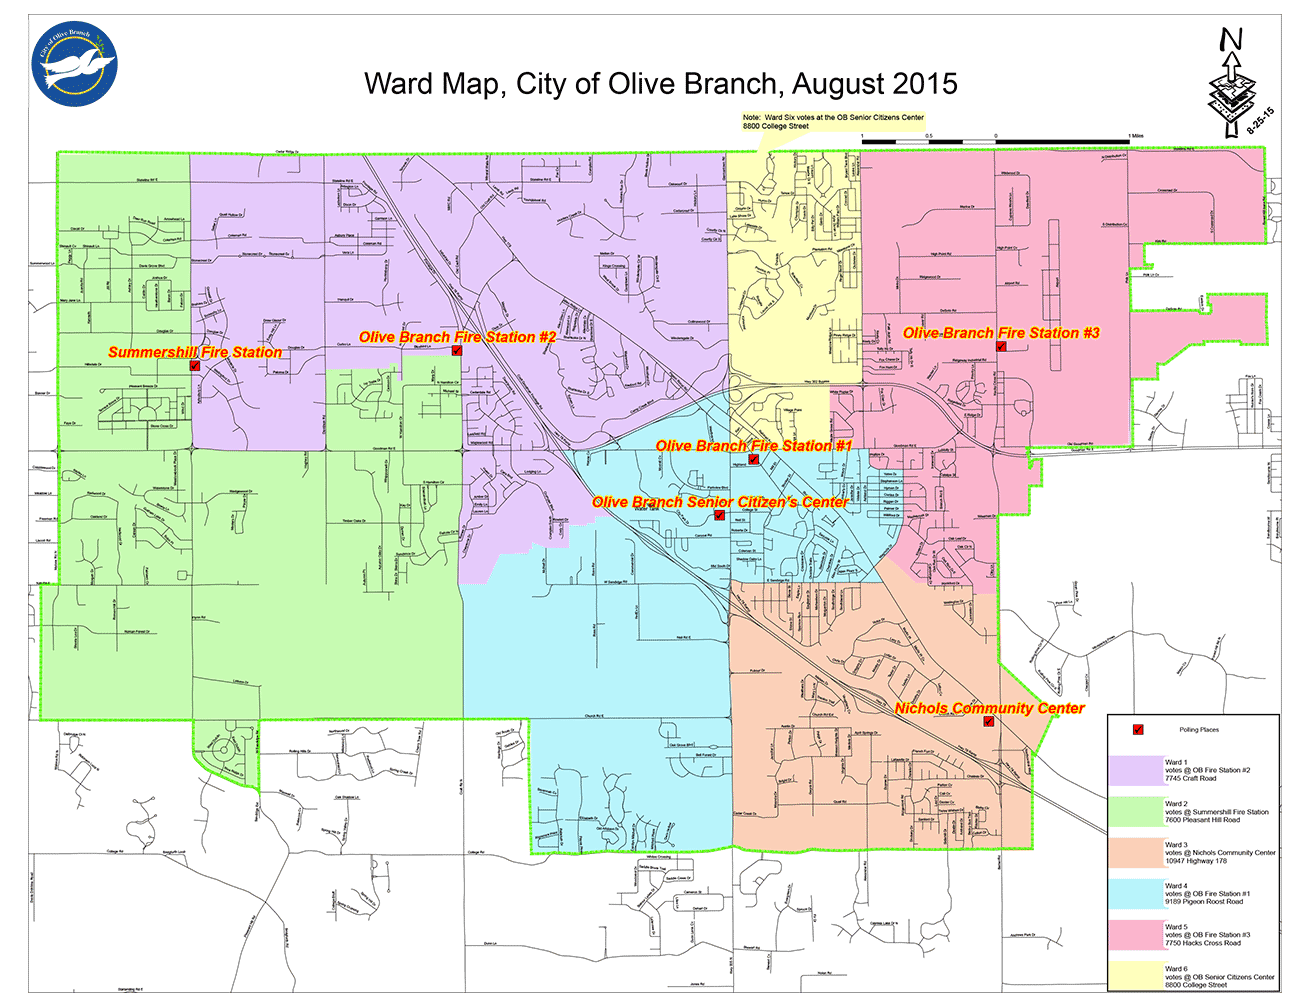 City Maps City Of Olive Branch MS - District of downloadable us road map